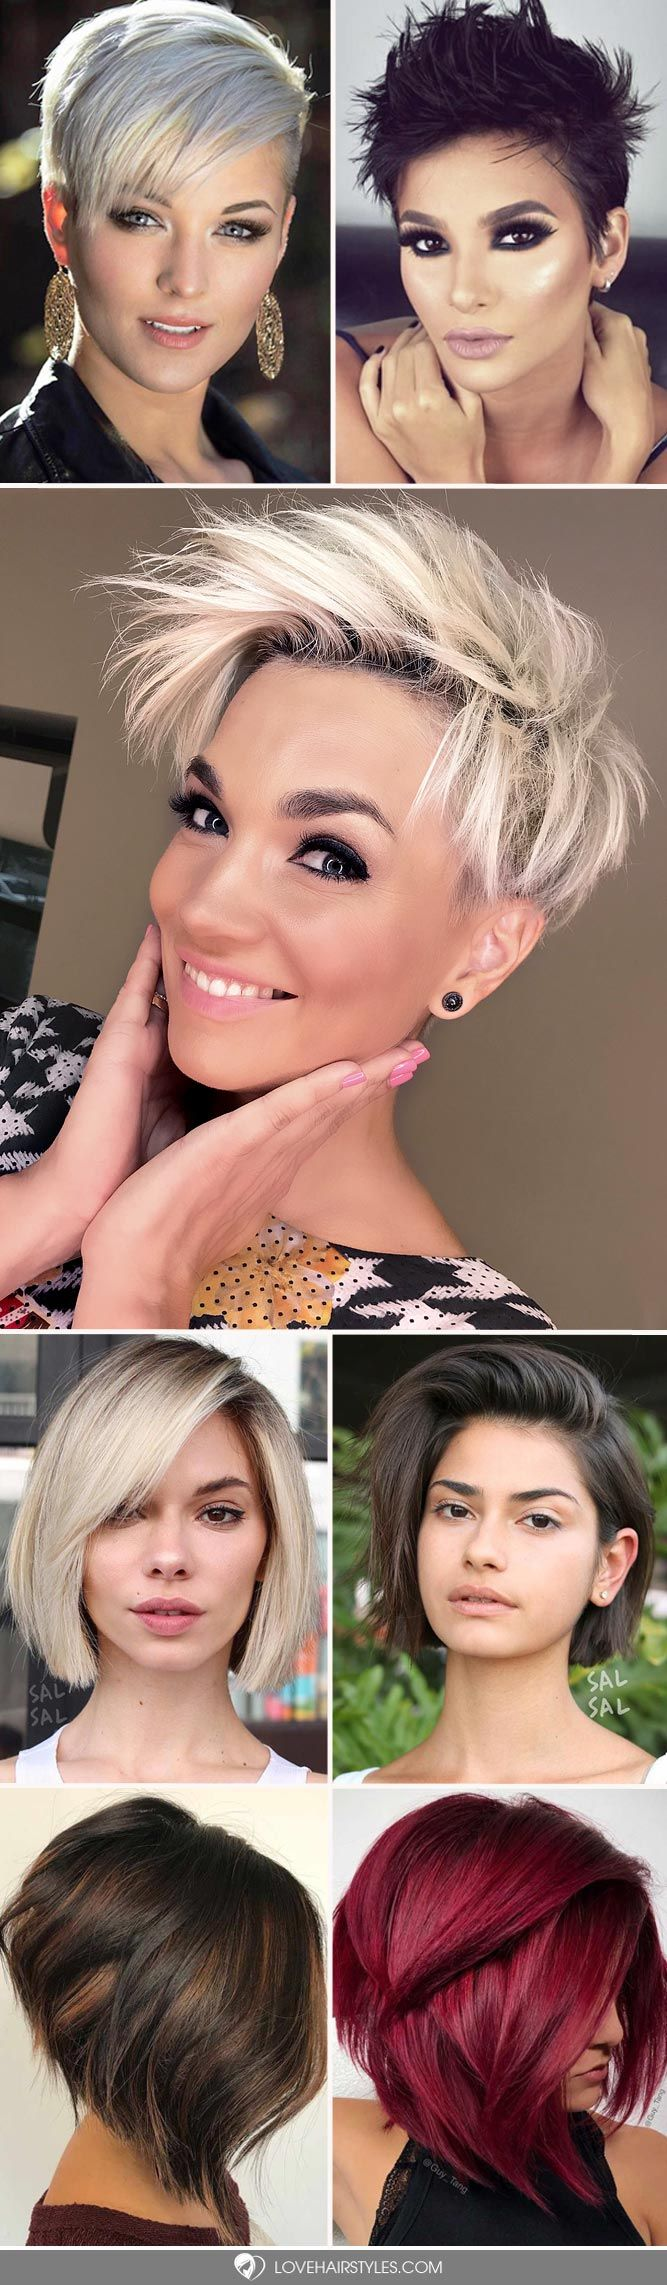 Are you out of short hair ideas? We can solve this problem! We always follow the trends to keep you updated. This photo gallery is a must-see! #shorthair  #shorthairstyles #hairstyles